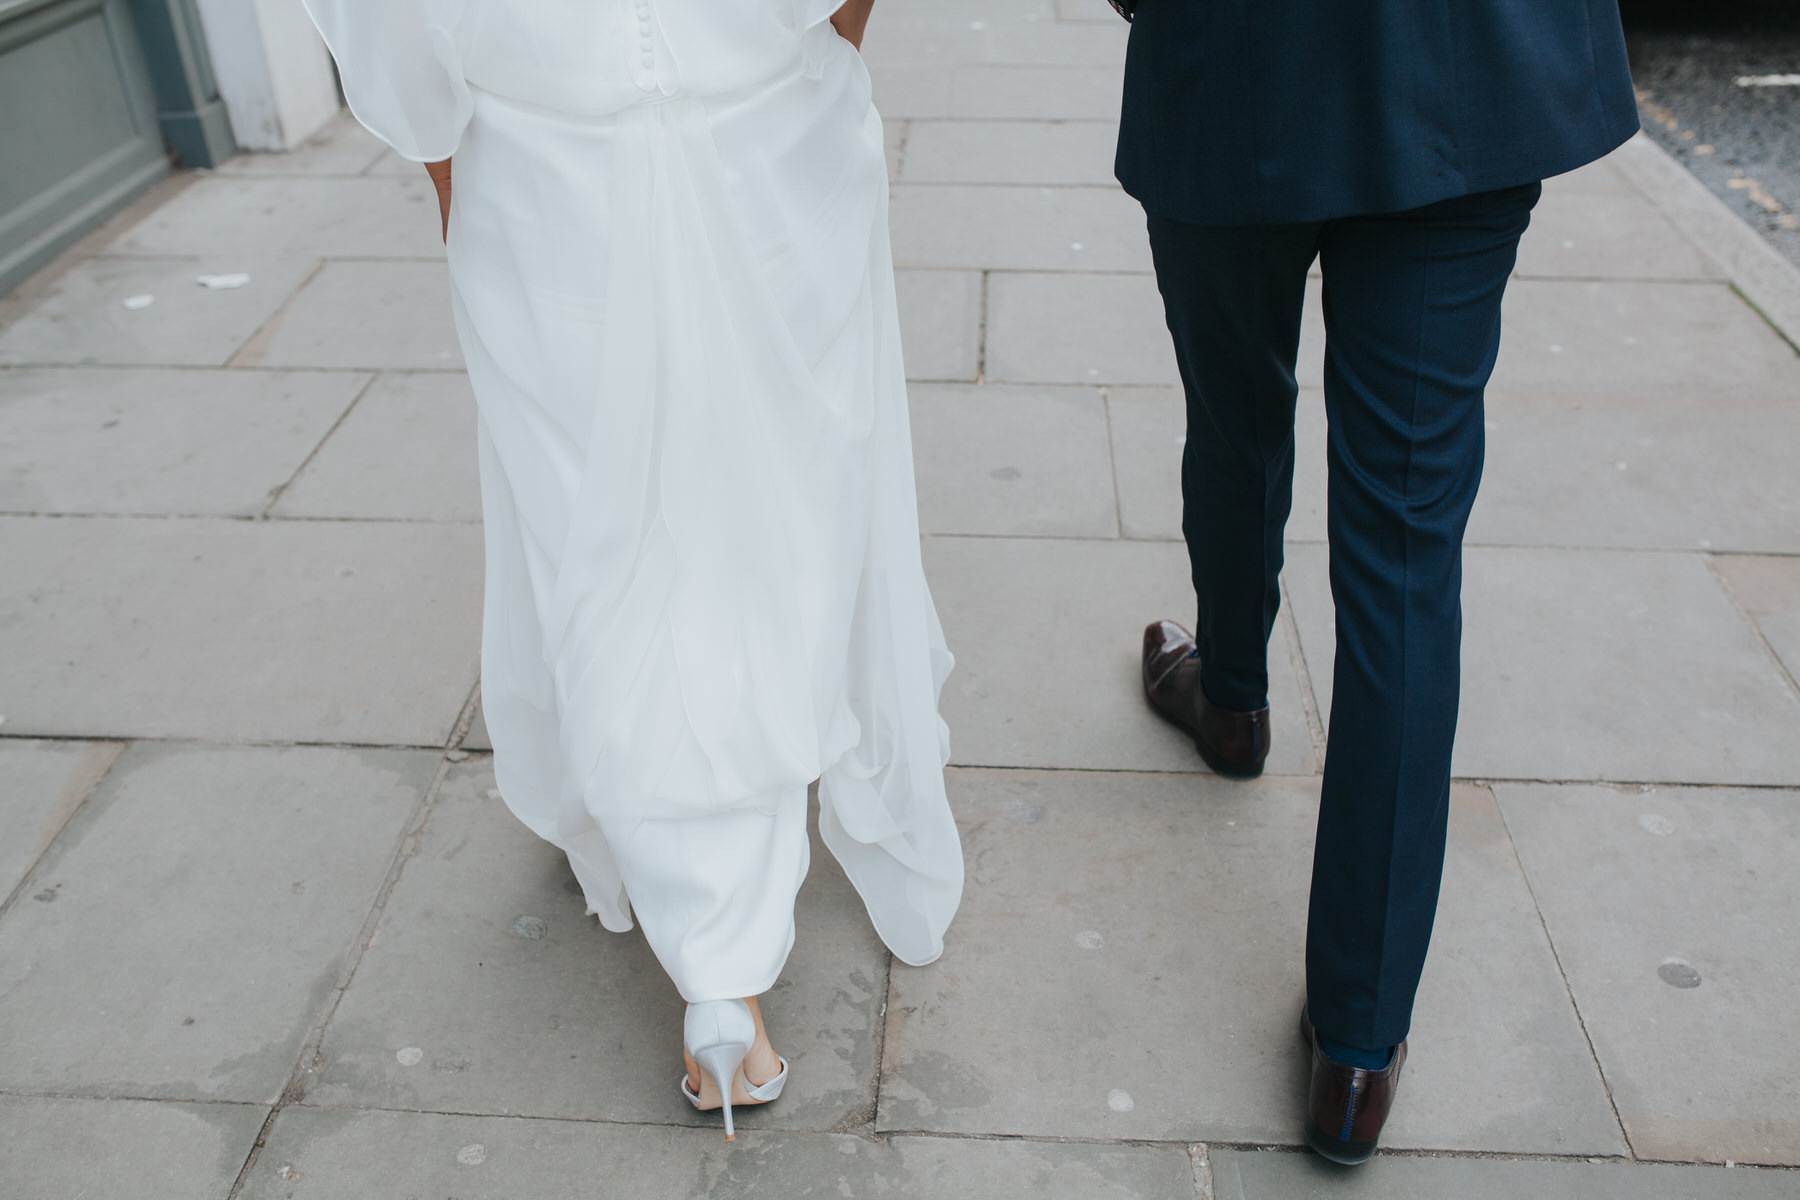 the hem of brides dress with sandals peeking